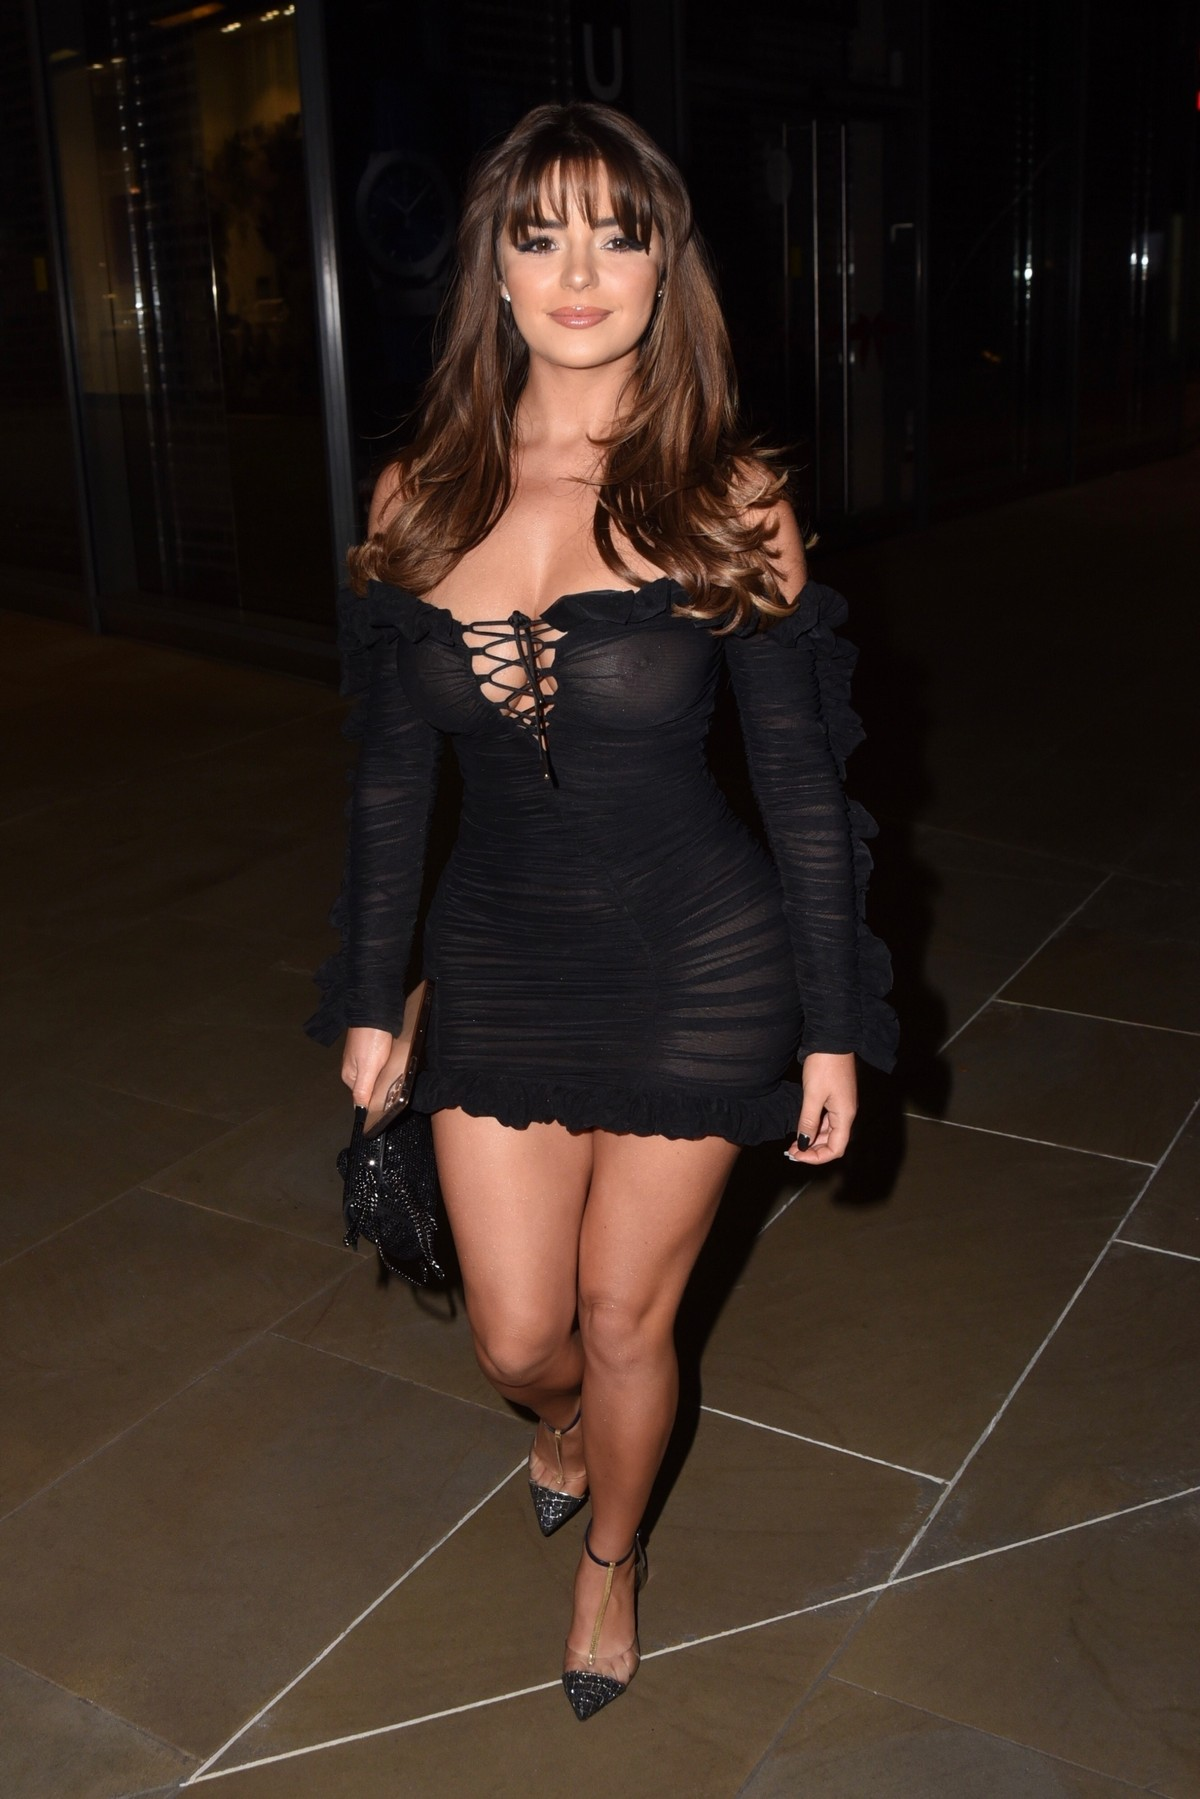 Demi Rose Mawby seen in Stylish Short Dress at The Skinny Tan Choc Range launch party in Madison, London 2019/11/19 23